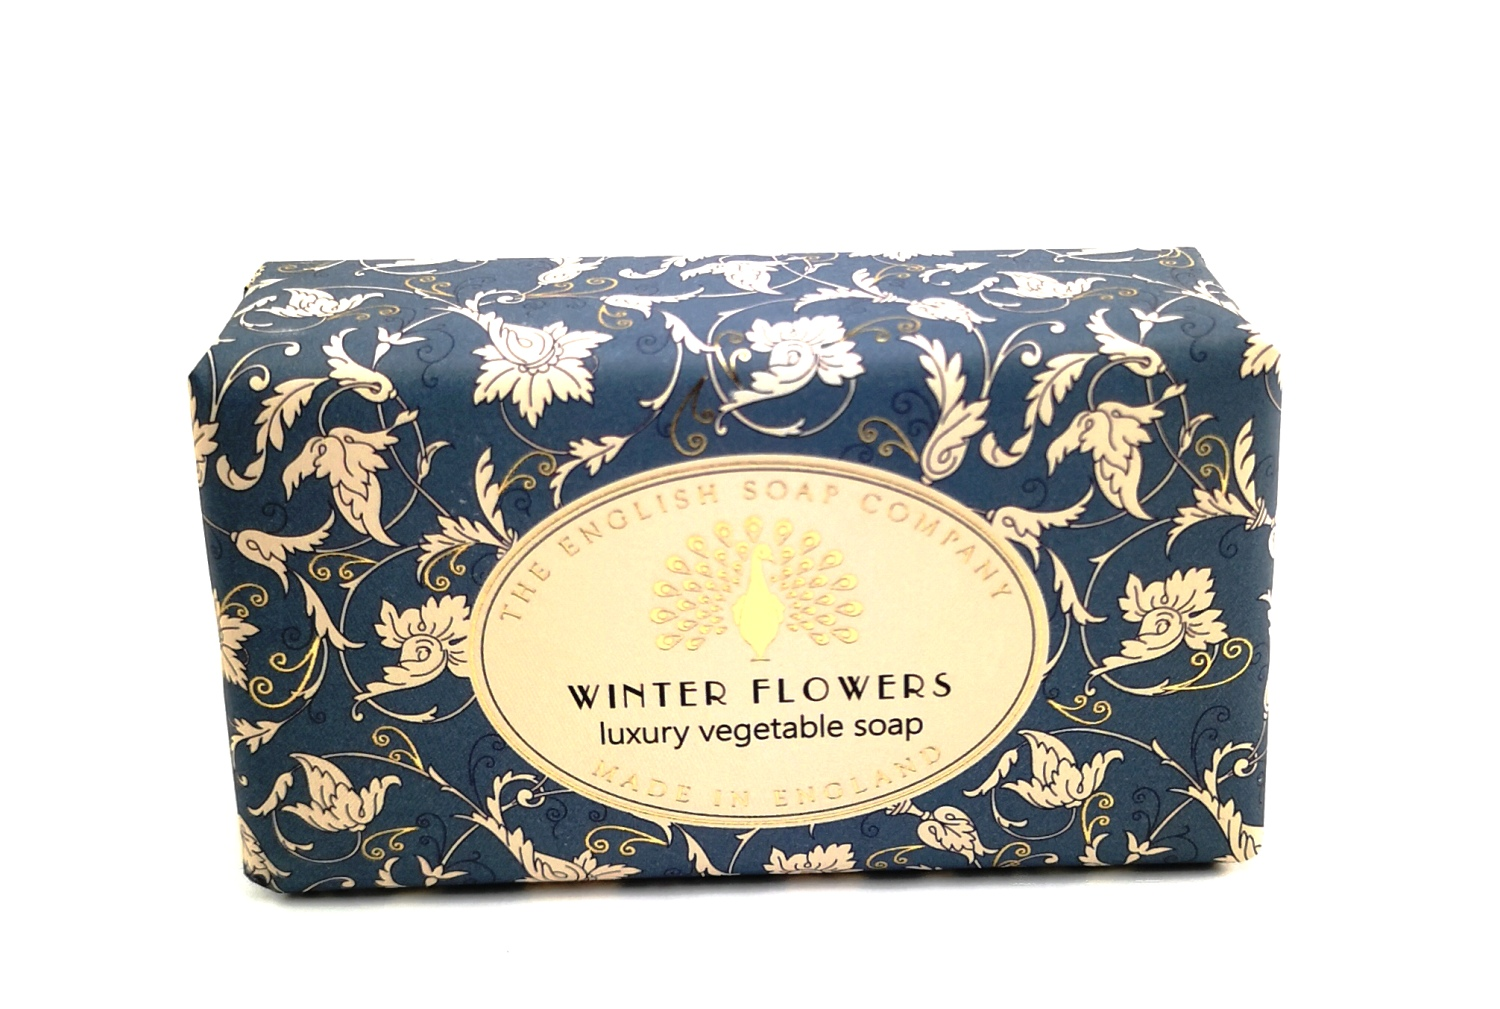 THE ENGLISH SOAP Luxury Handmade vegetable Soap